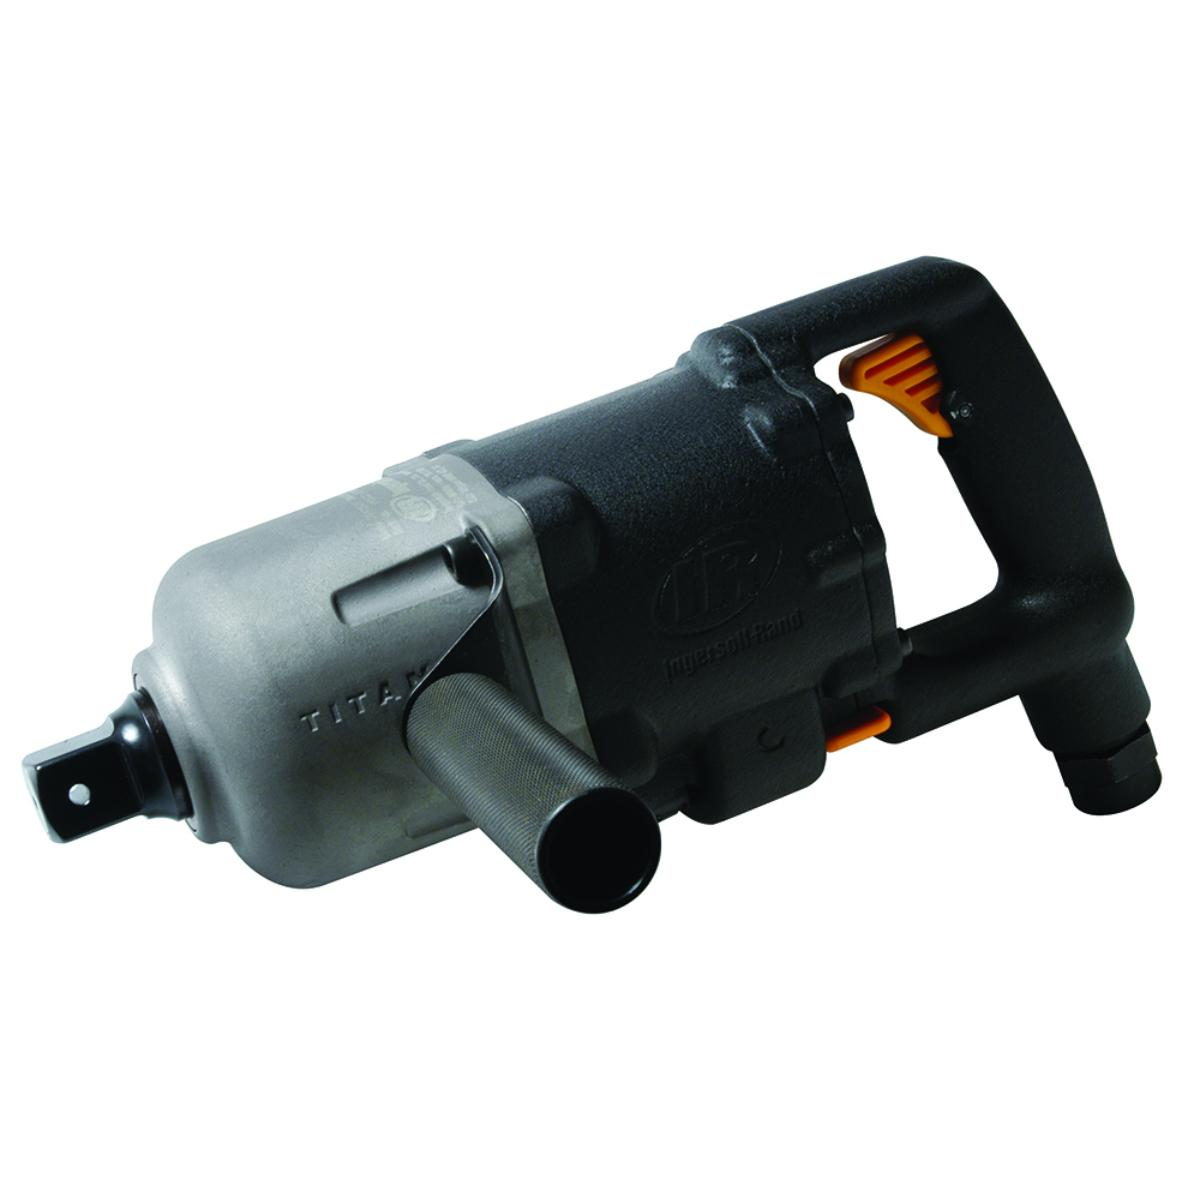 1-In Drive Titanium Super Duty Impact Wrench - 3,250 Ft-Lbs Max Torque